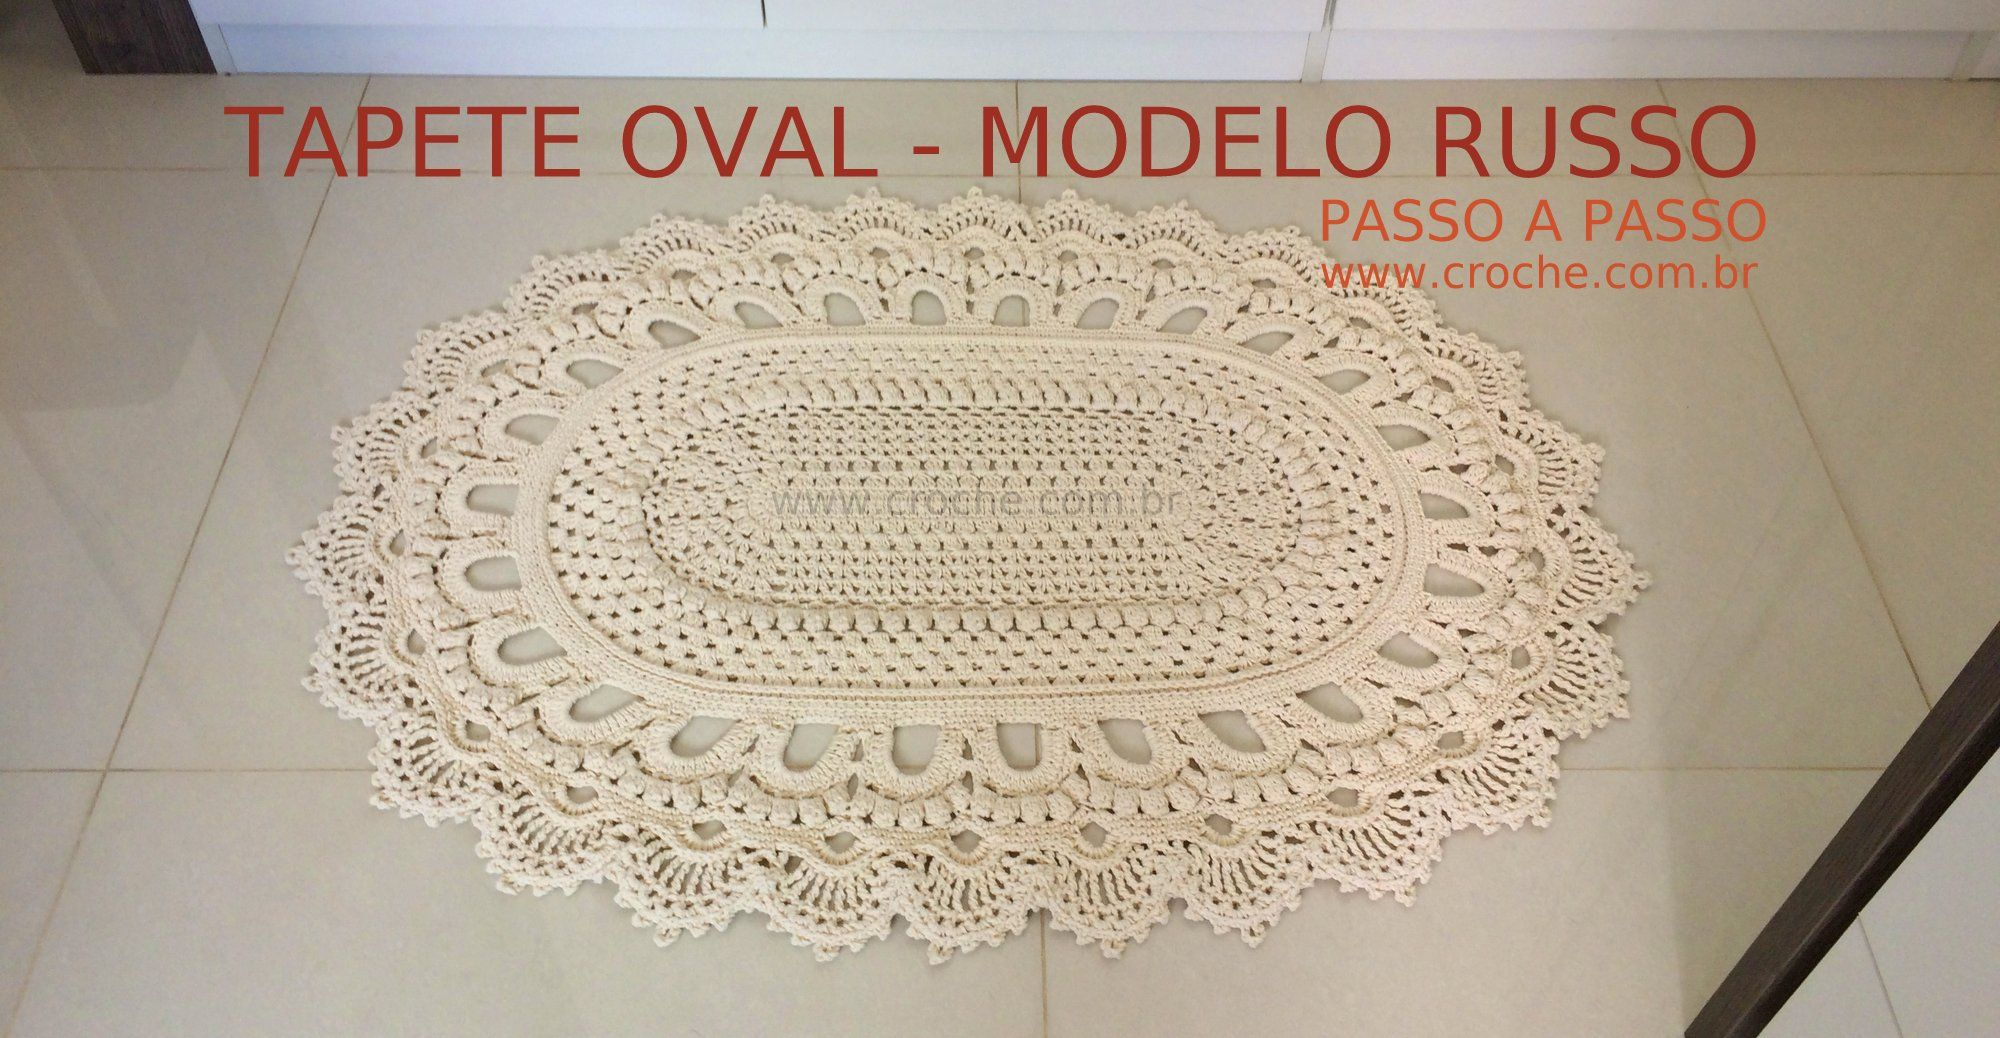 Tapete oval modelo Russo – passo a passo | Tapetes, Agujas de tejer ...